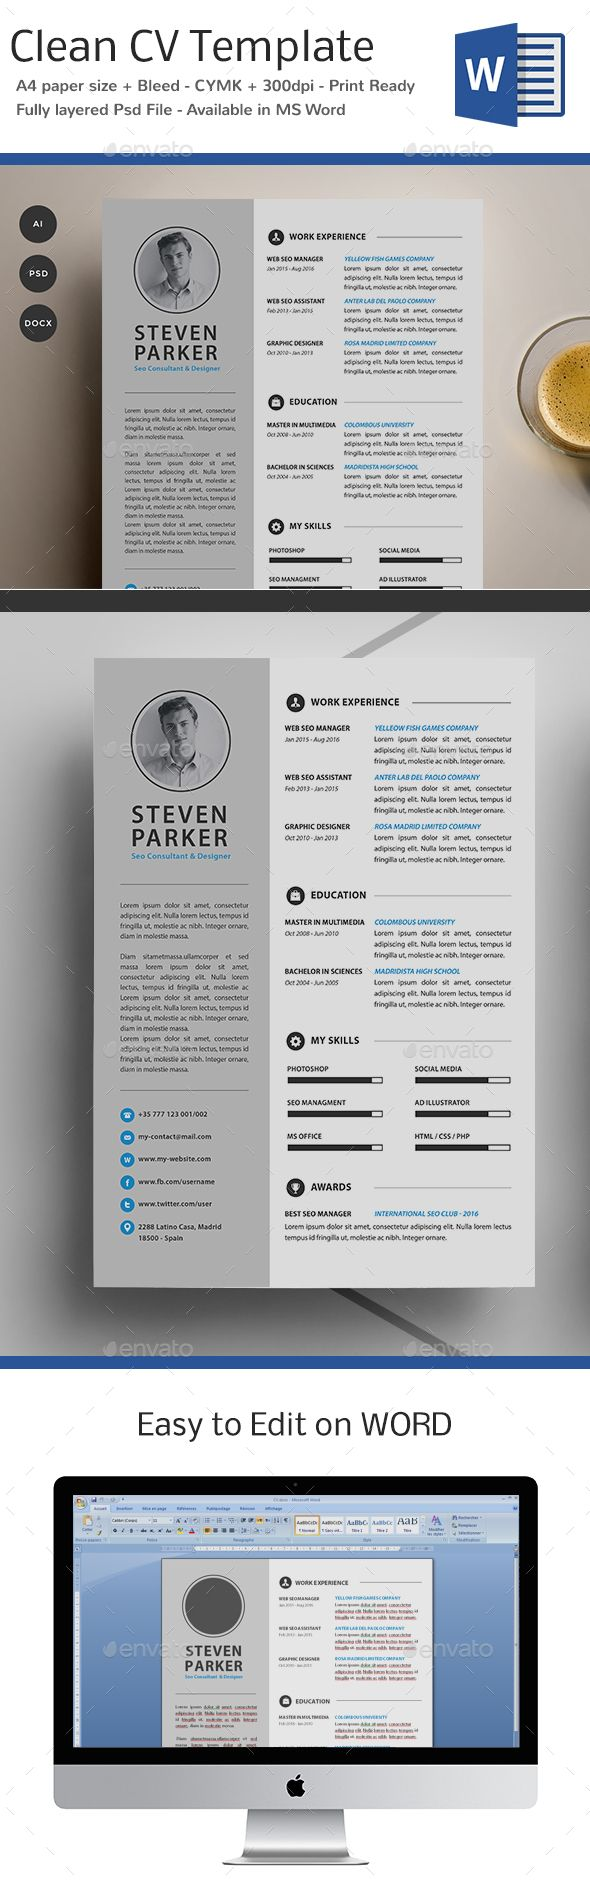 Stunning Php Resume Upload Code Gallery - Professional Resume ...